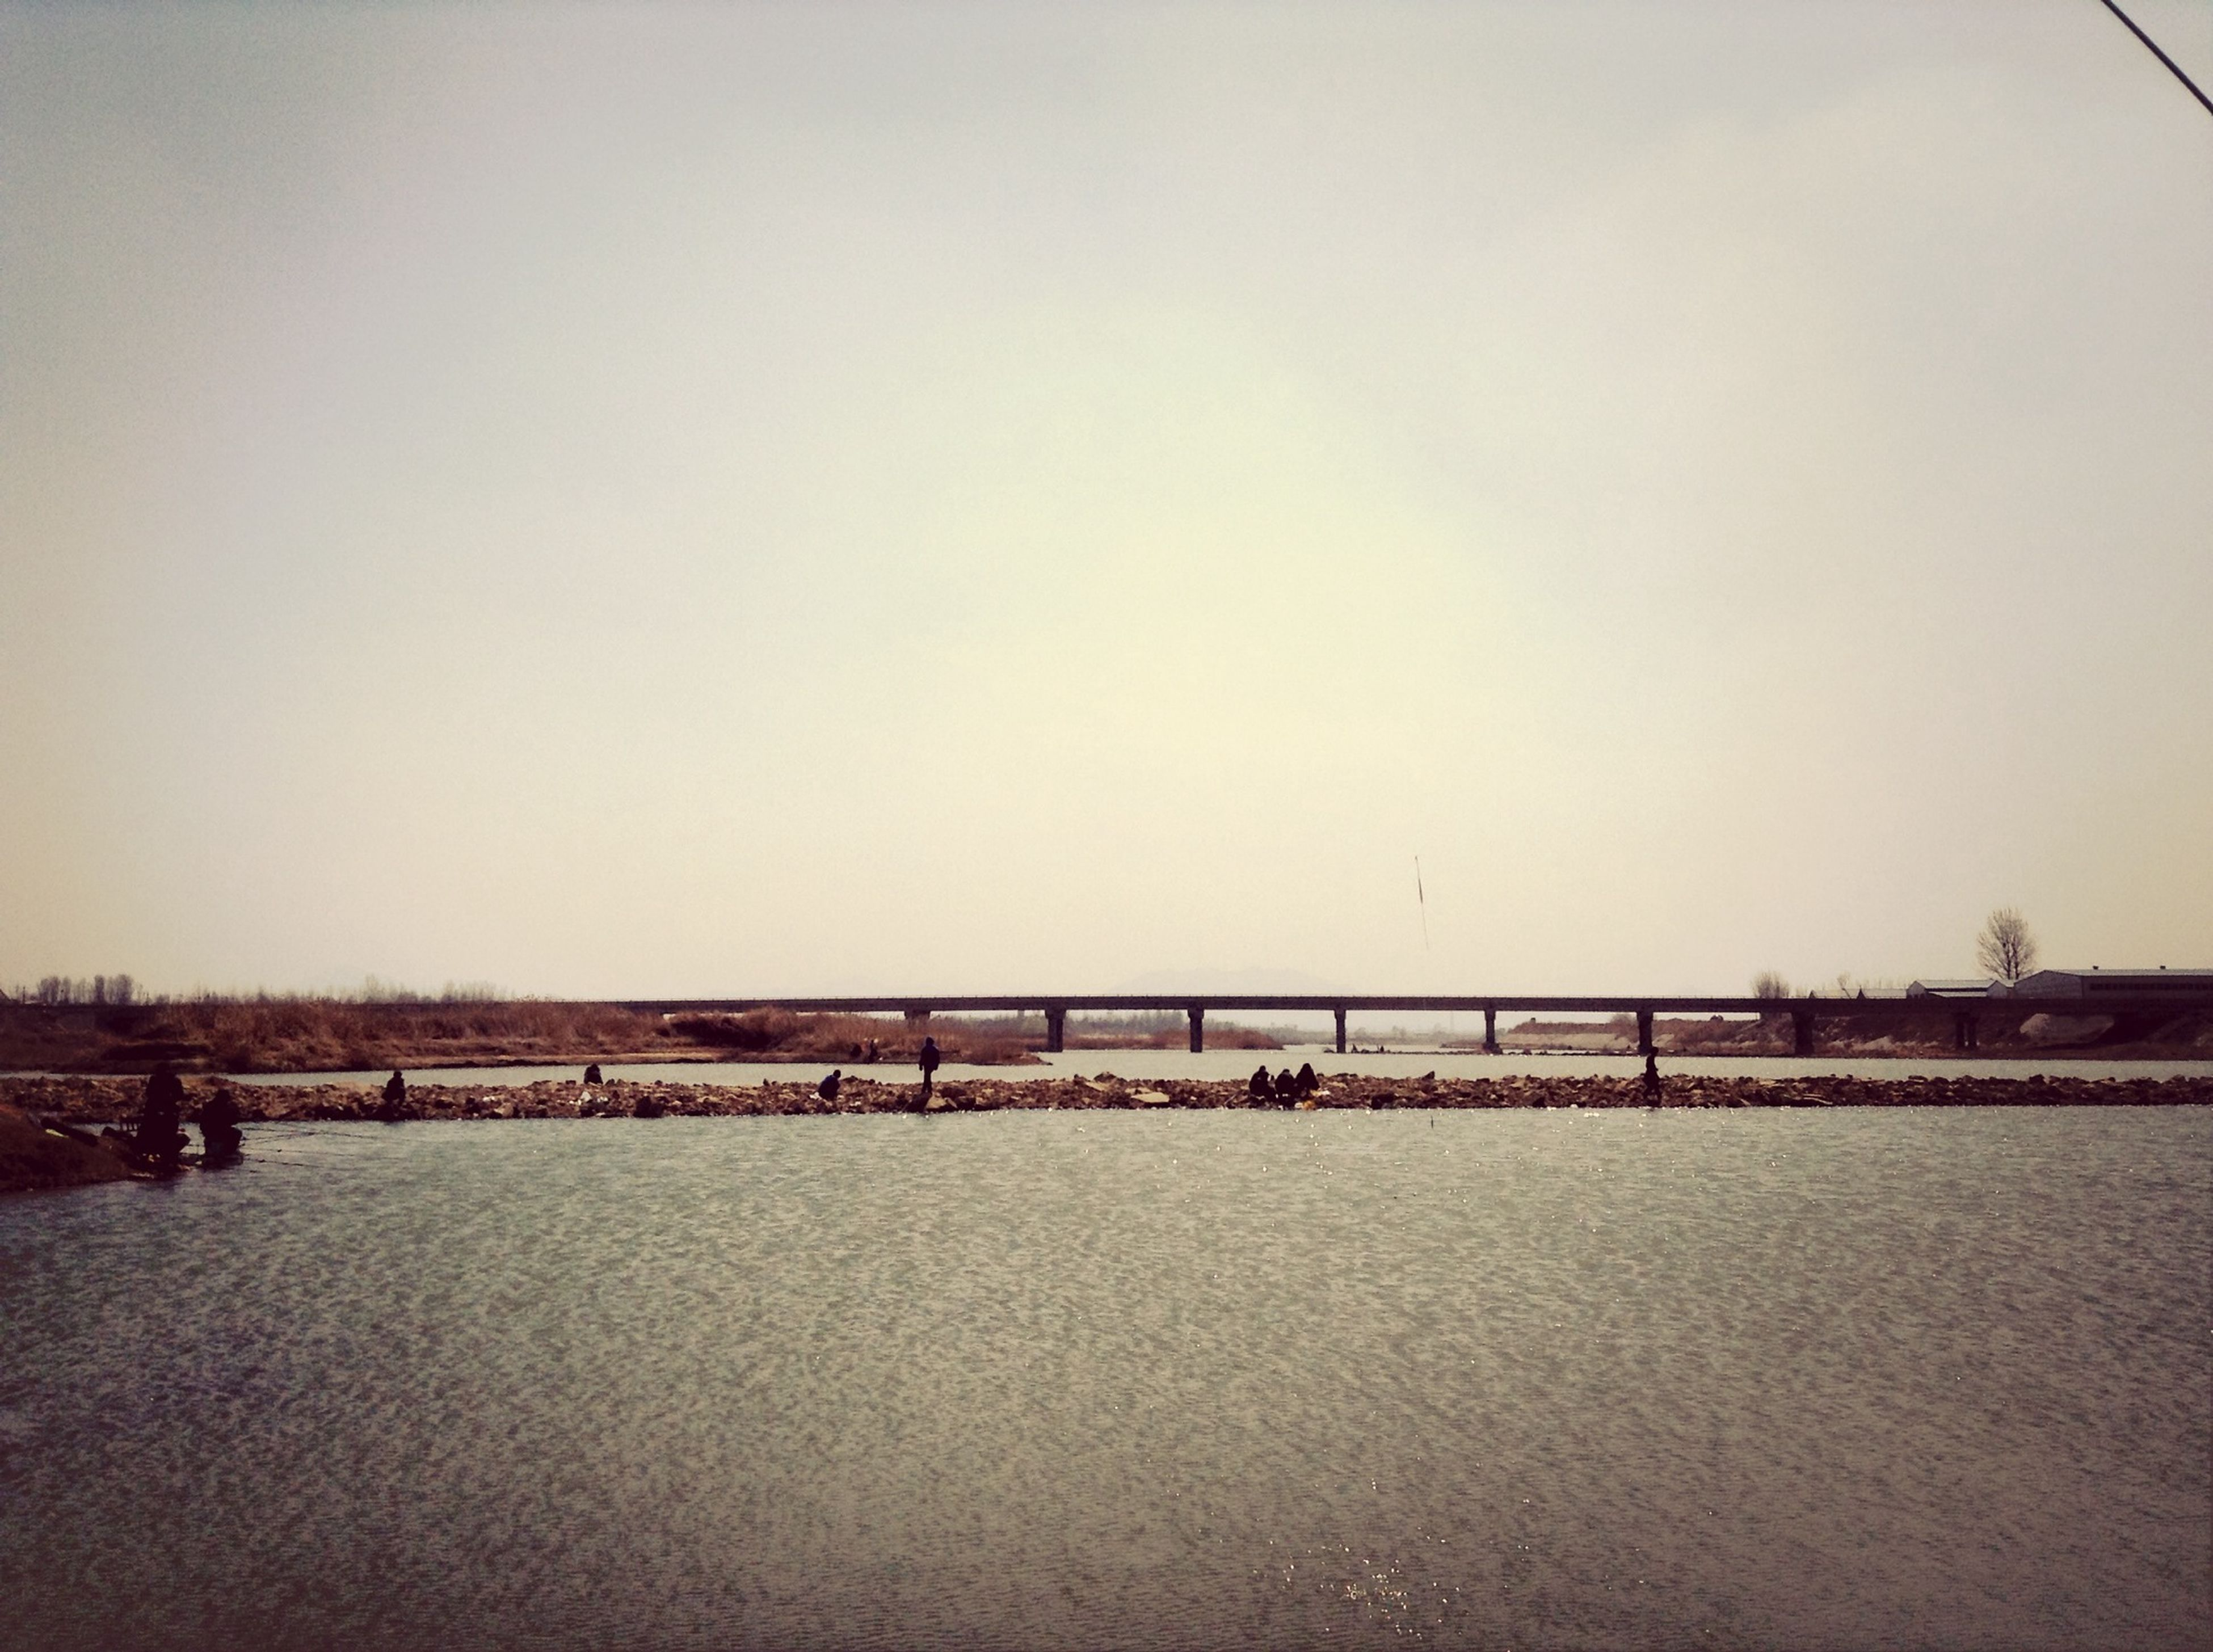 clear sky, copy space, connection, built structure, bridge - man made structure, architecture, water, tranquility, bridge, tranquil scene, nature, outdoors, transportation, scenics, no people, engineering, day, sky, beauty in nature, long